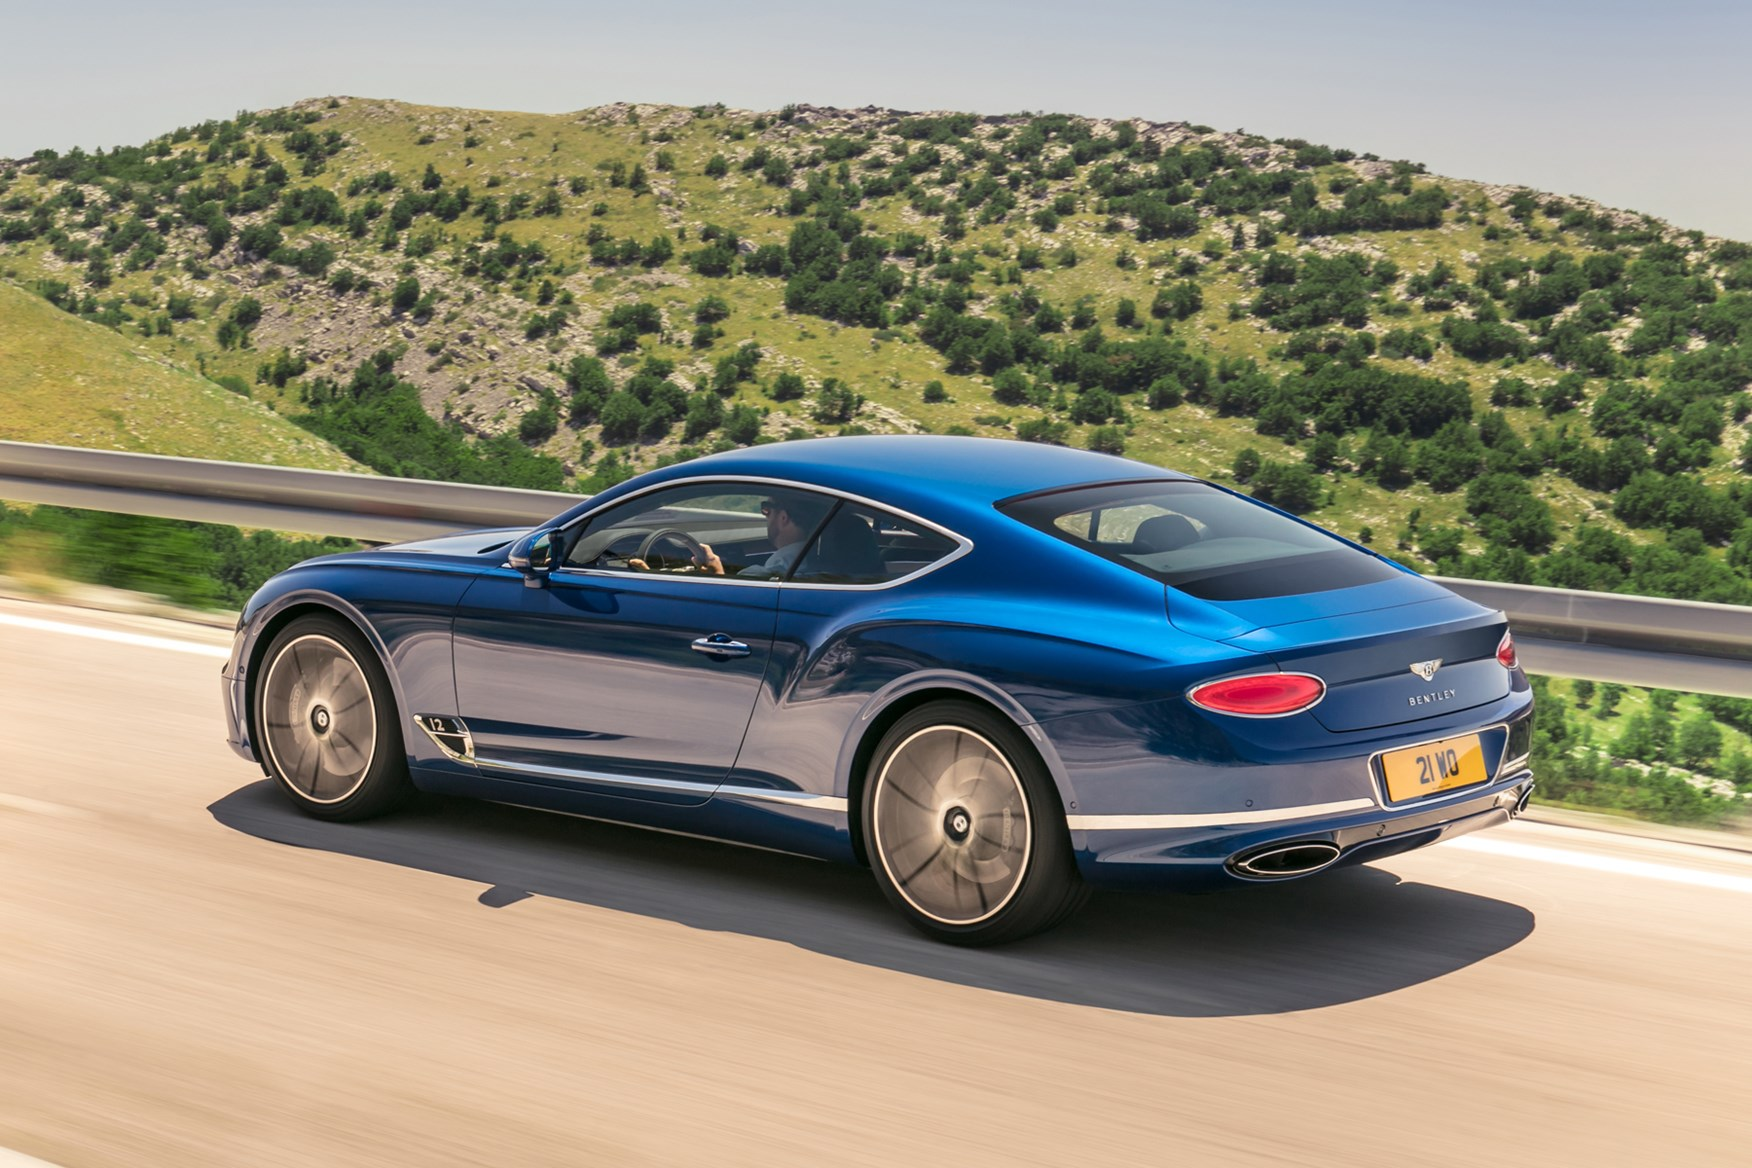 Bentley Continental GT features air springs for exceptional ride comfort